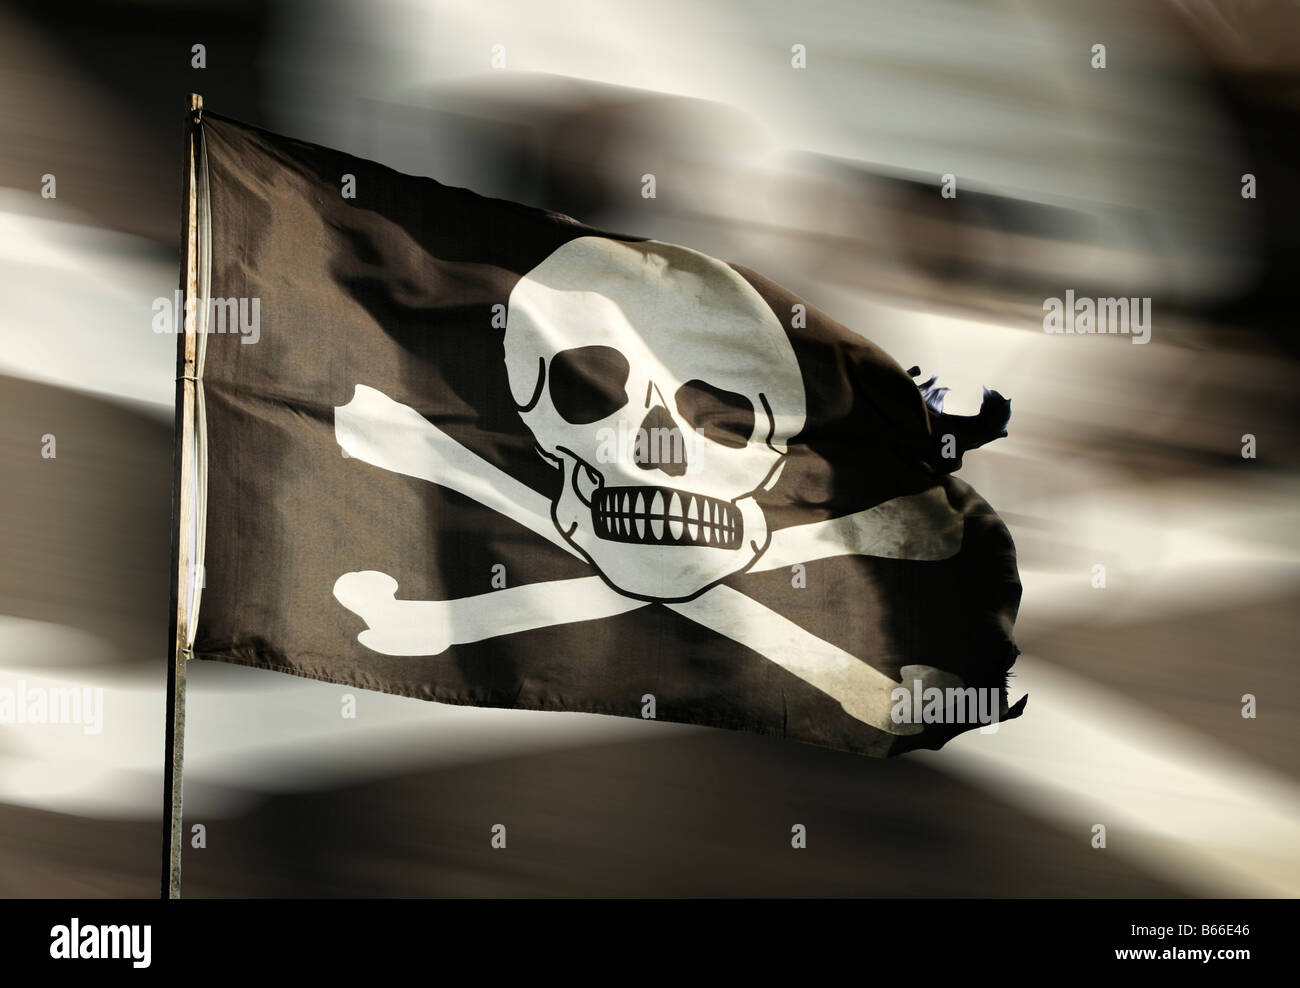 A Pirate flag Concept - Stock Image